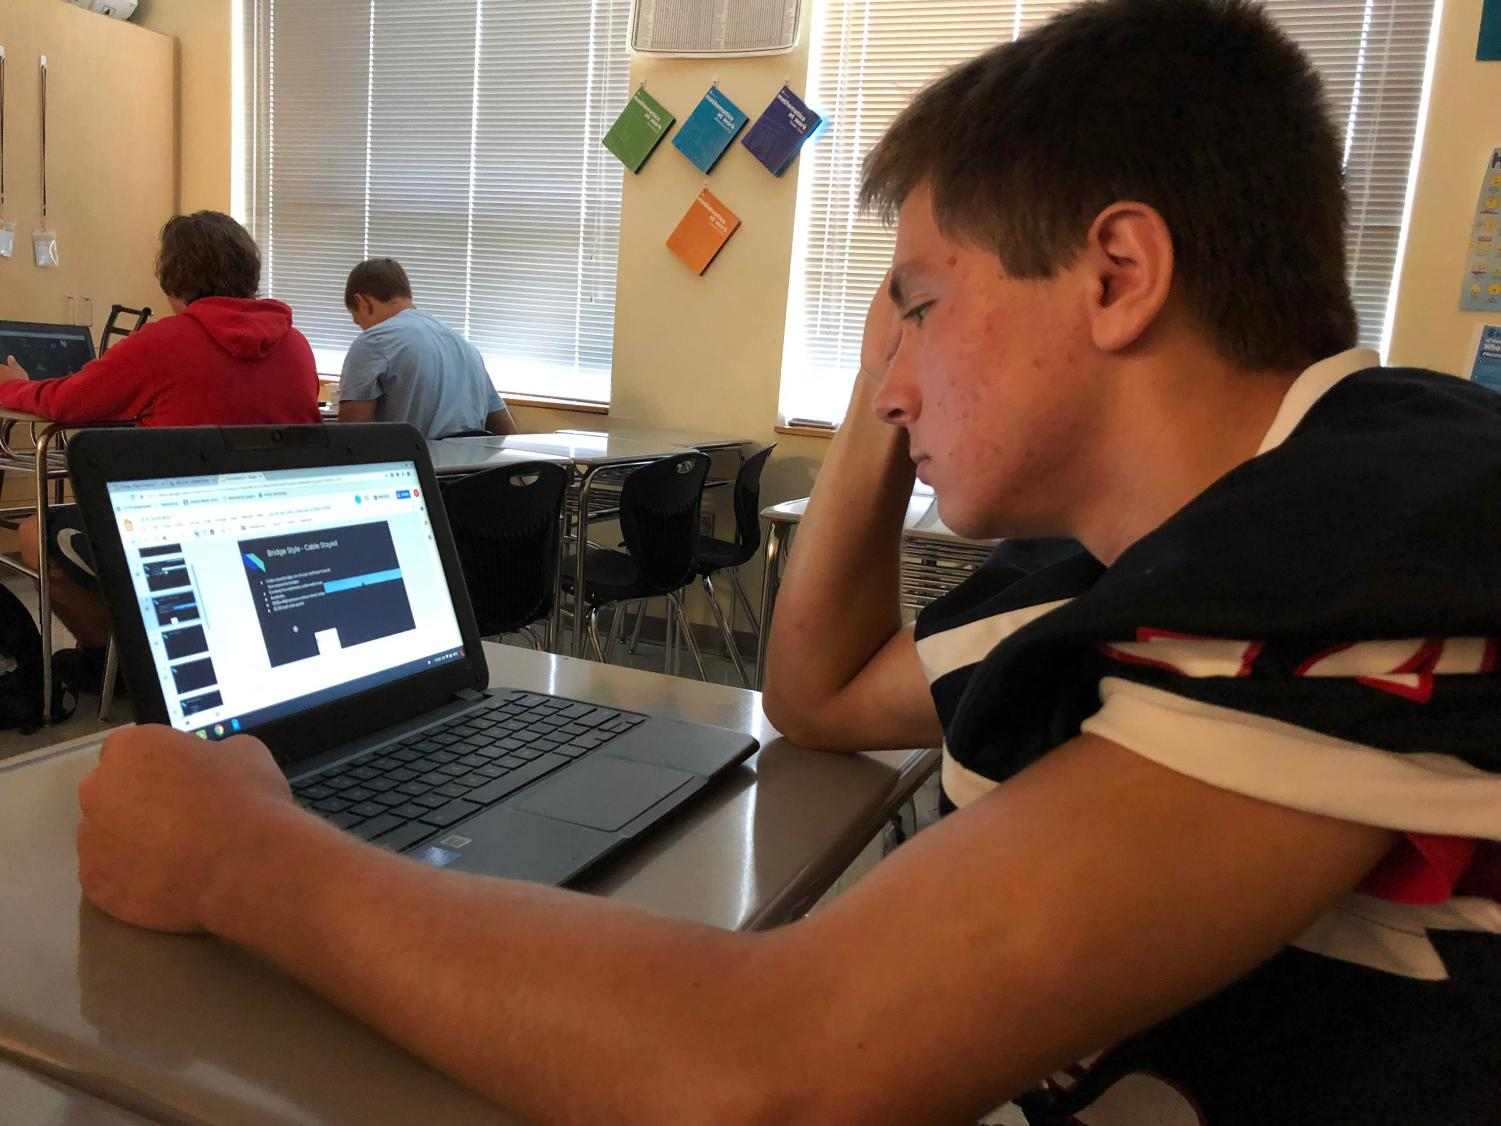 Junior Nick Hayslett works in PREP to finish his homework on time.